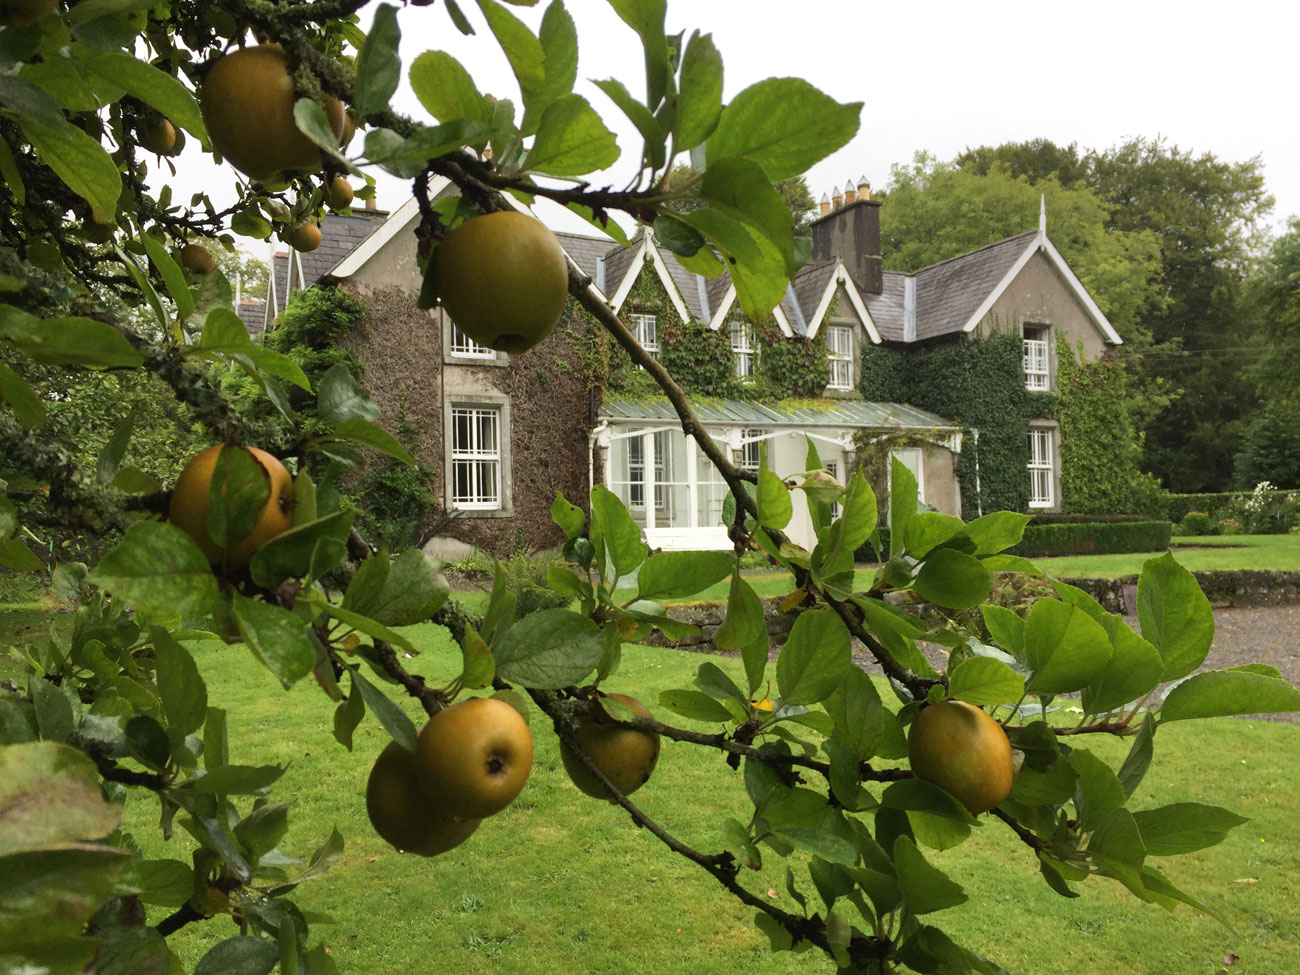 company days out blackstairs eco trail house with apples